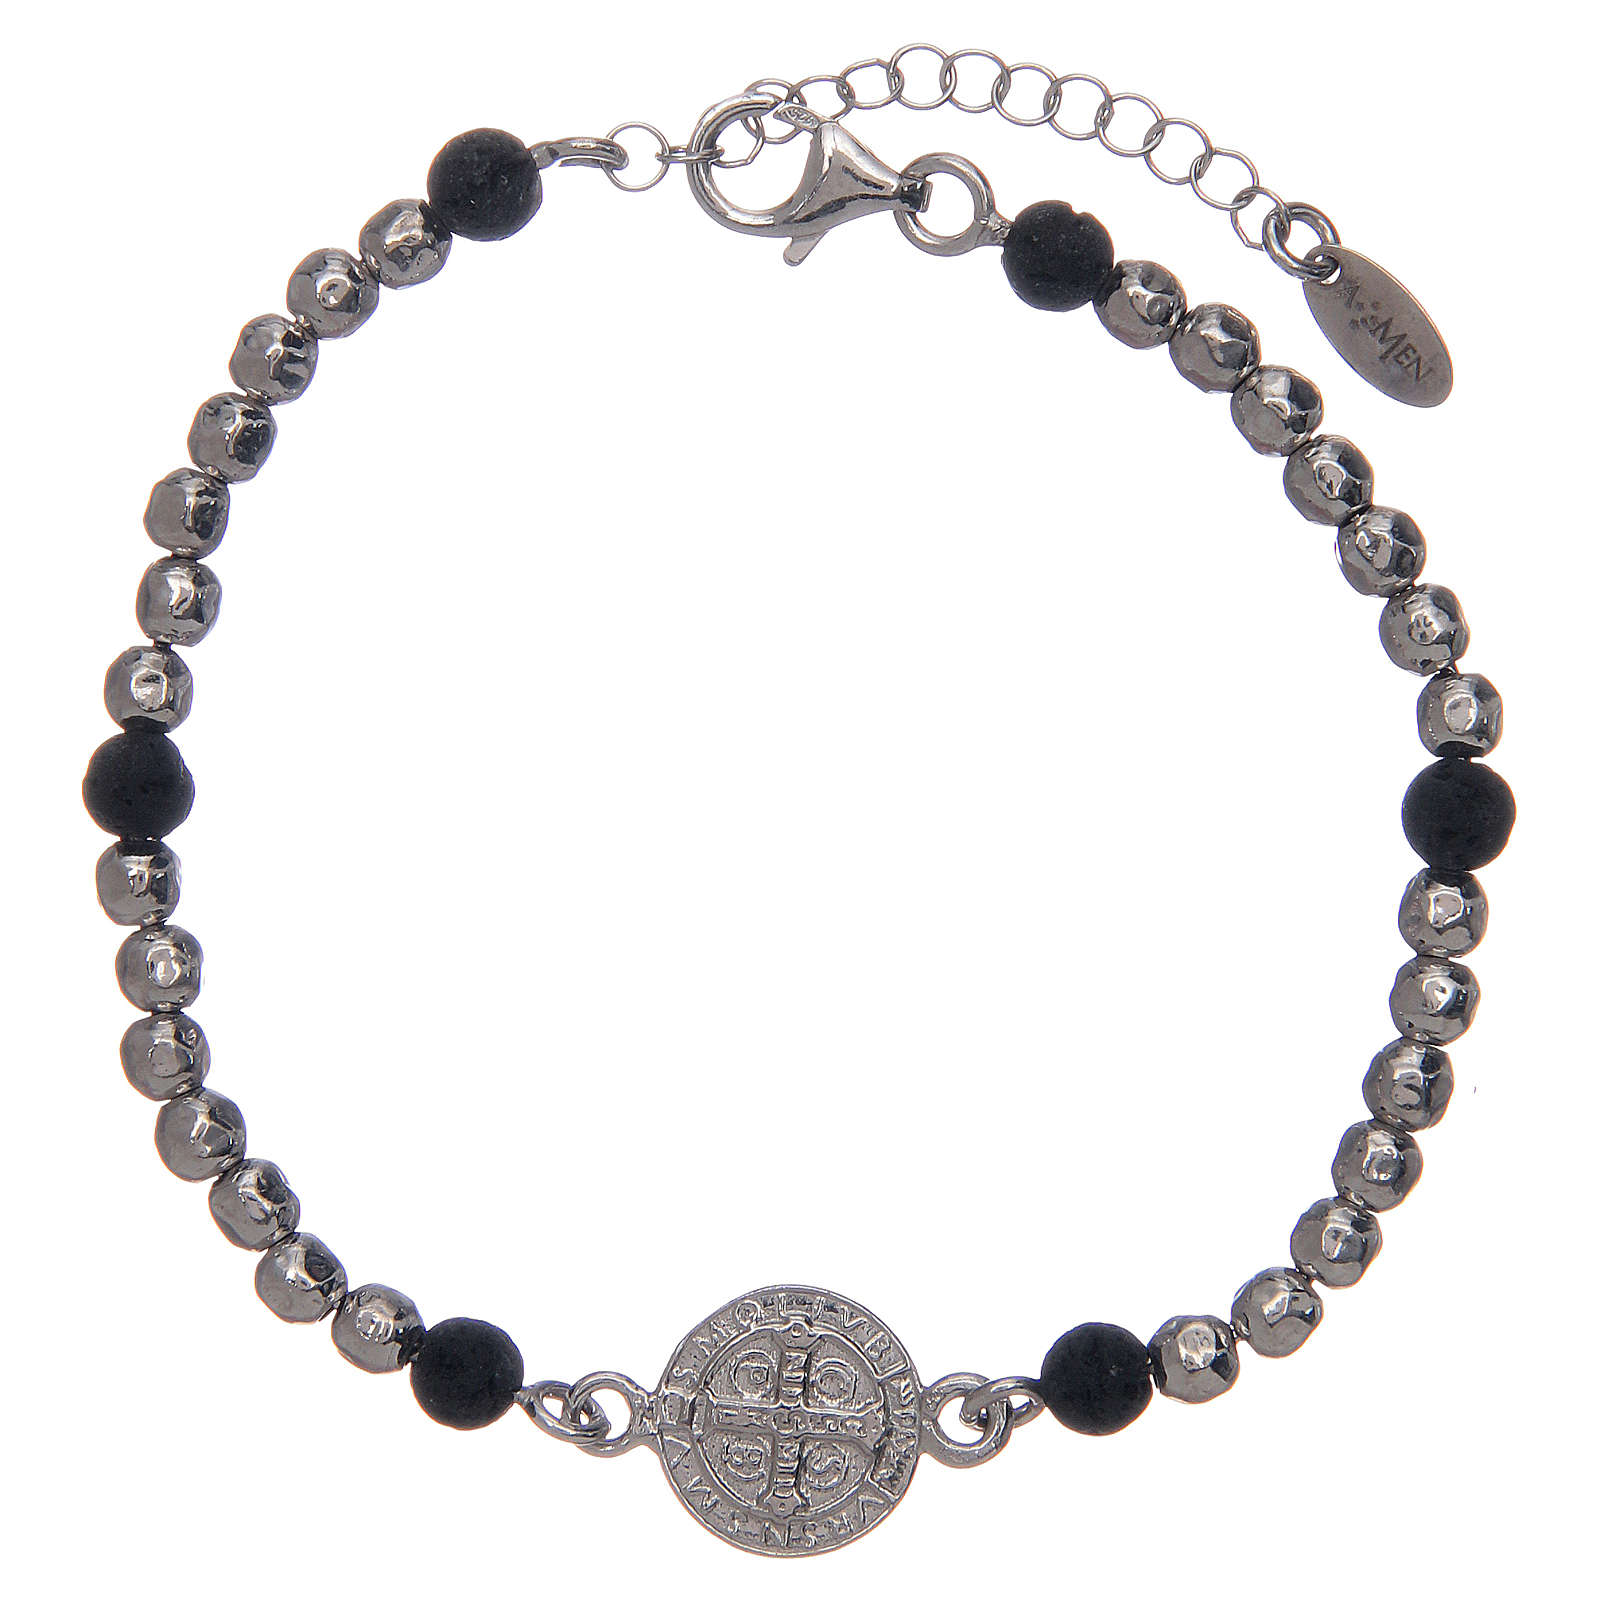 Saint Benedict medal bracelet with silver and lava stone beads 4